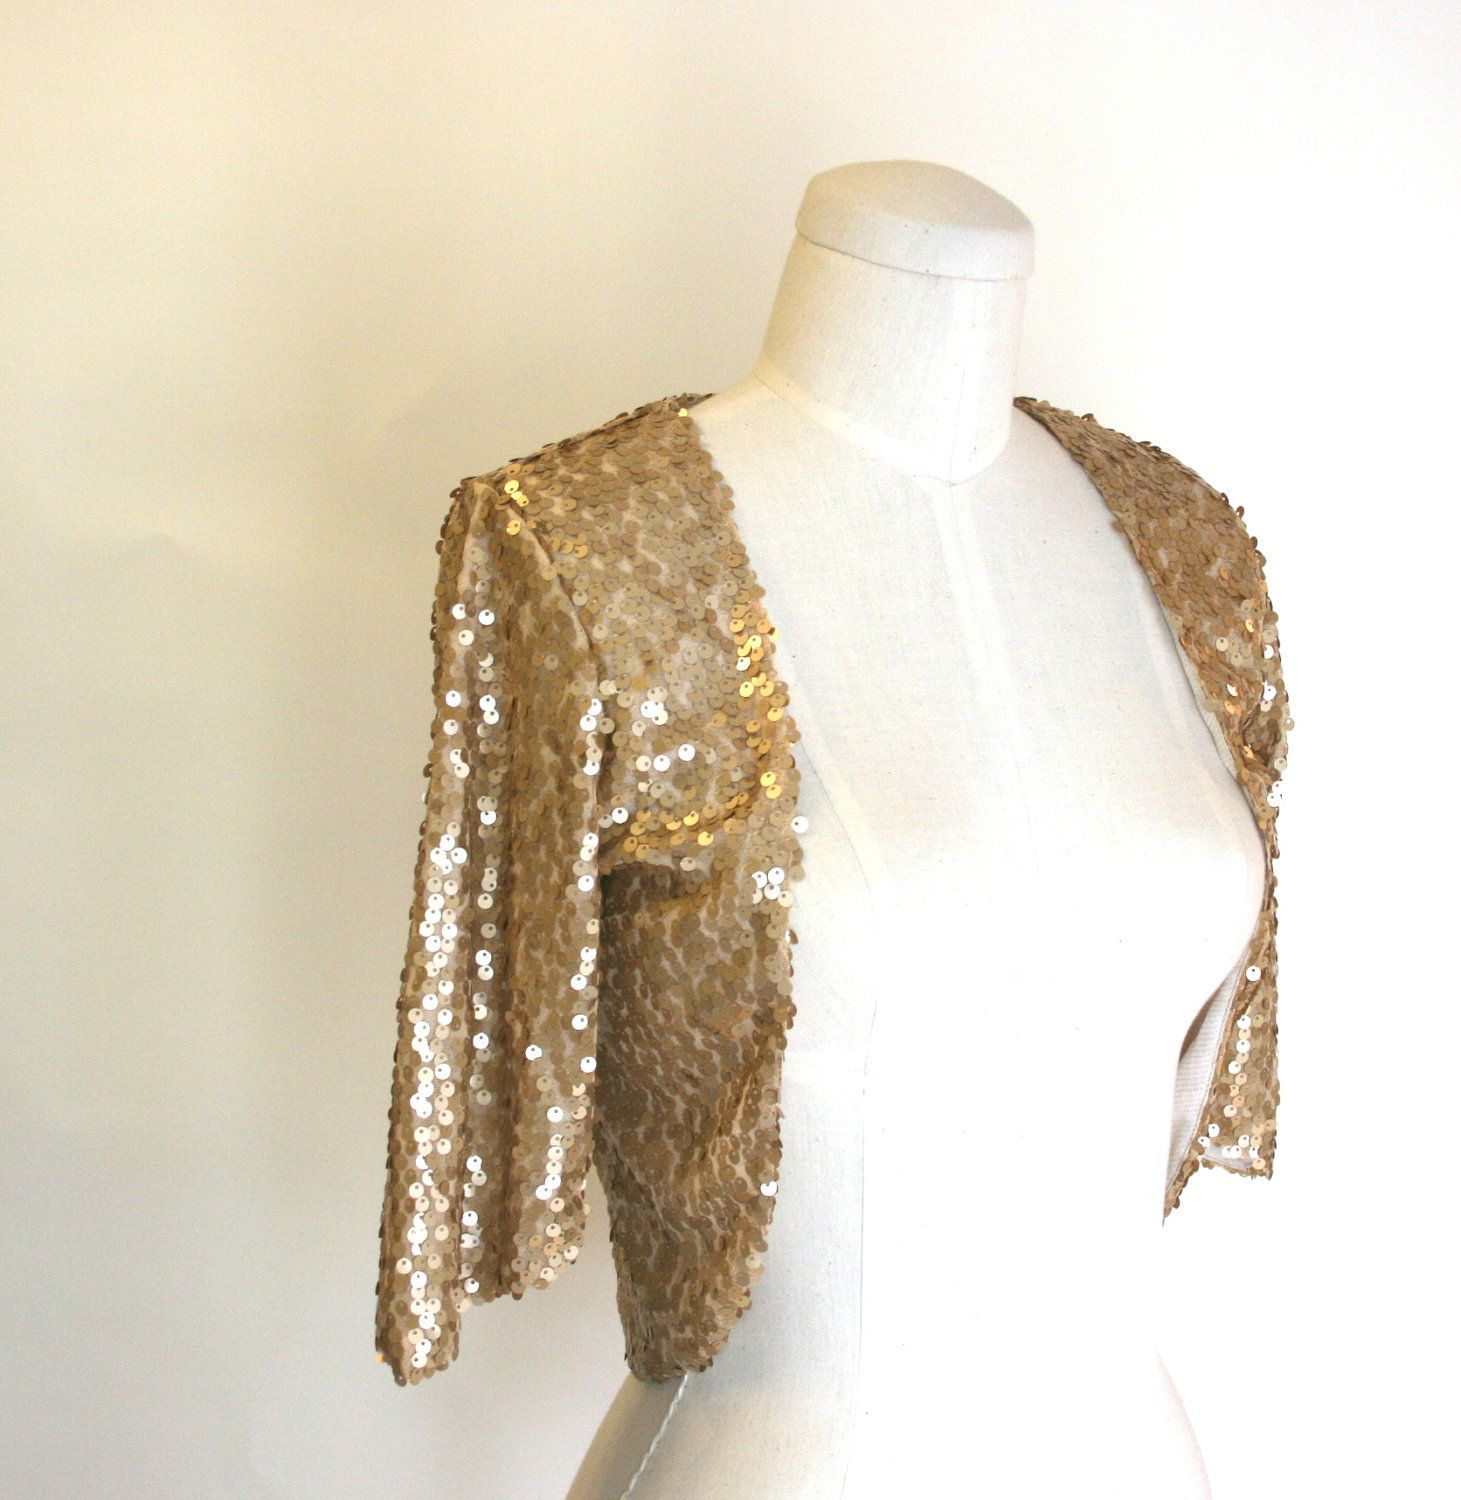 1a2b163aea4 Gold Sequined Bolero Shrug 3/4 sleeves for Formal Wedding or Bridal Party -  Classic and Simple - SALLY. $60.00, via Etsy.